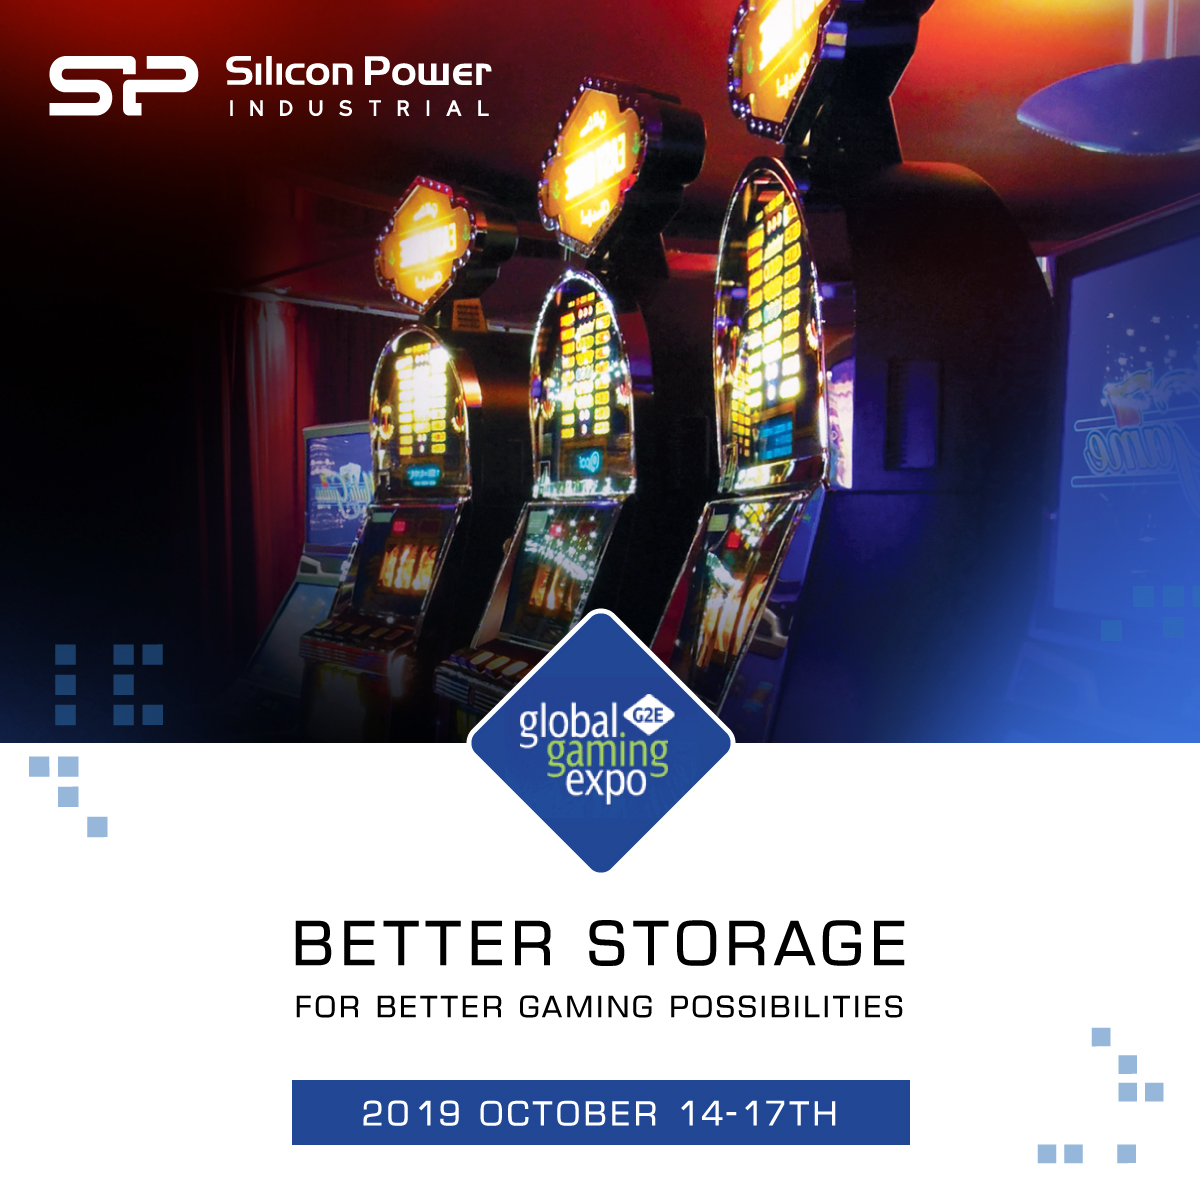 Silicon Power Prepares to Wow Guests at G2E with Industrial Solutions